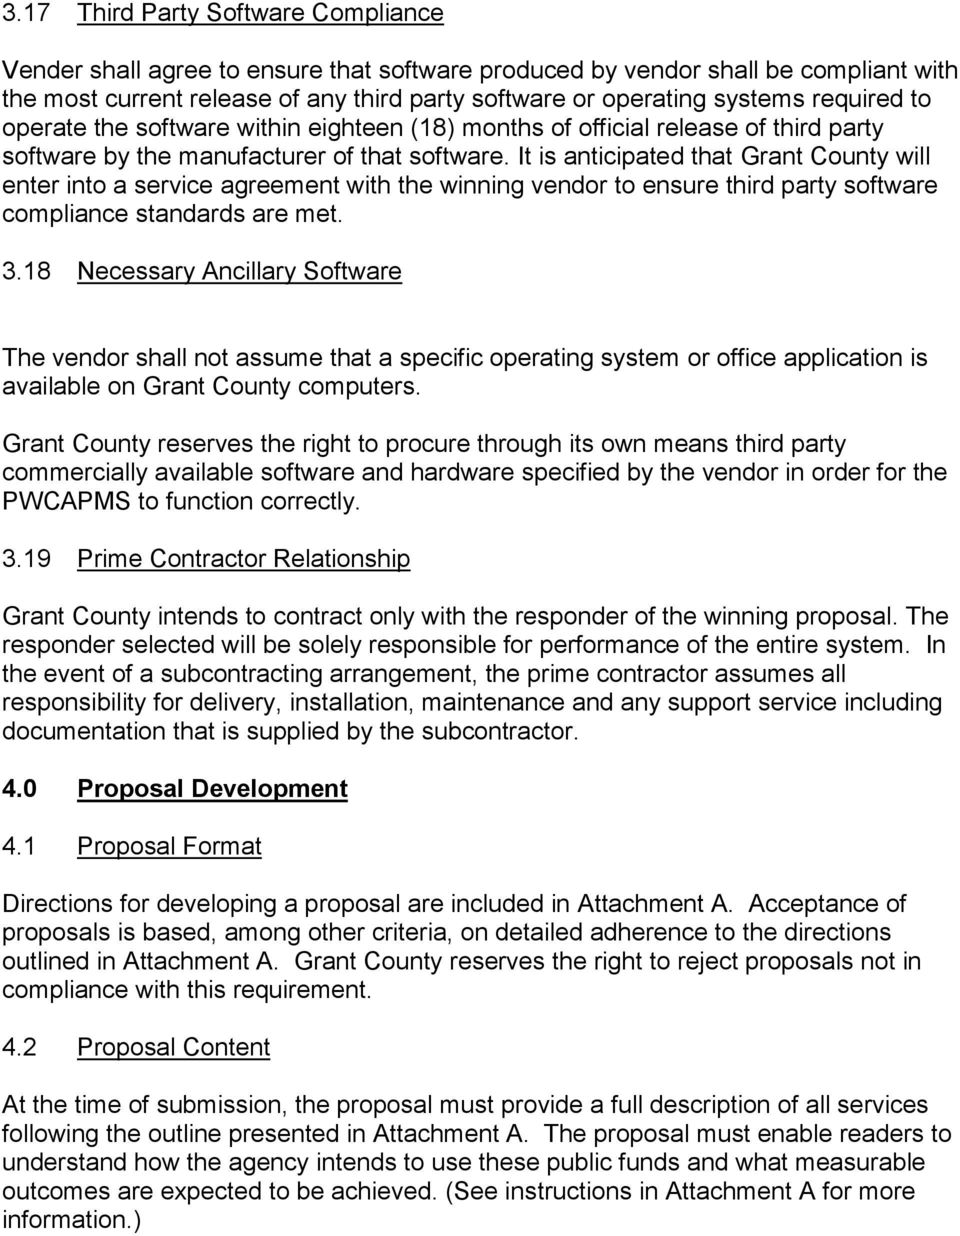 It is anticipated that Grant County will enter into a service agreement with the winning vendor to ensure third party software compliance standards are met. 3.